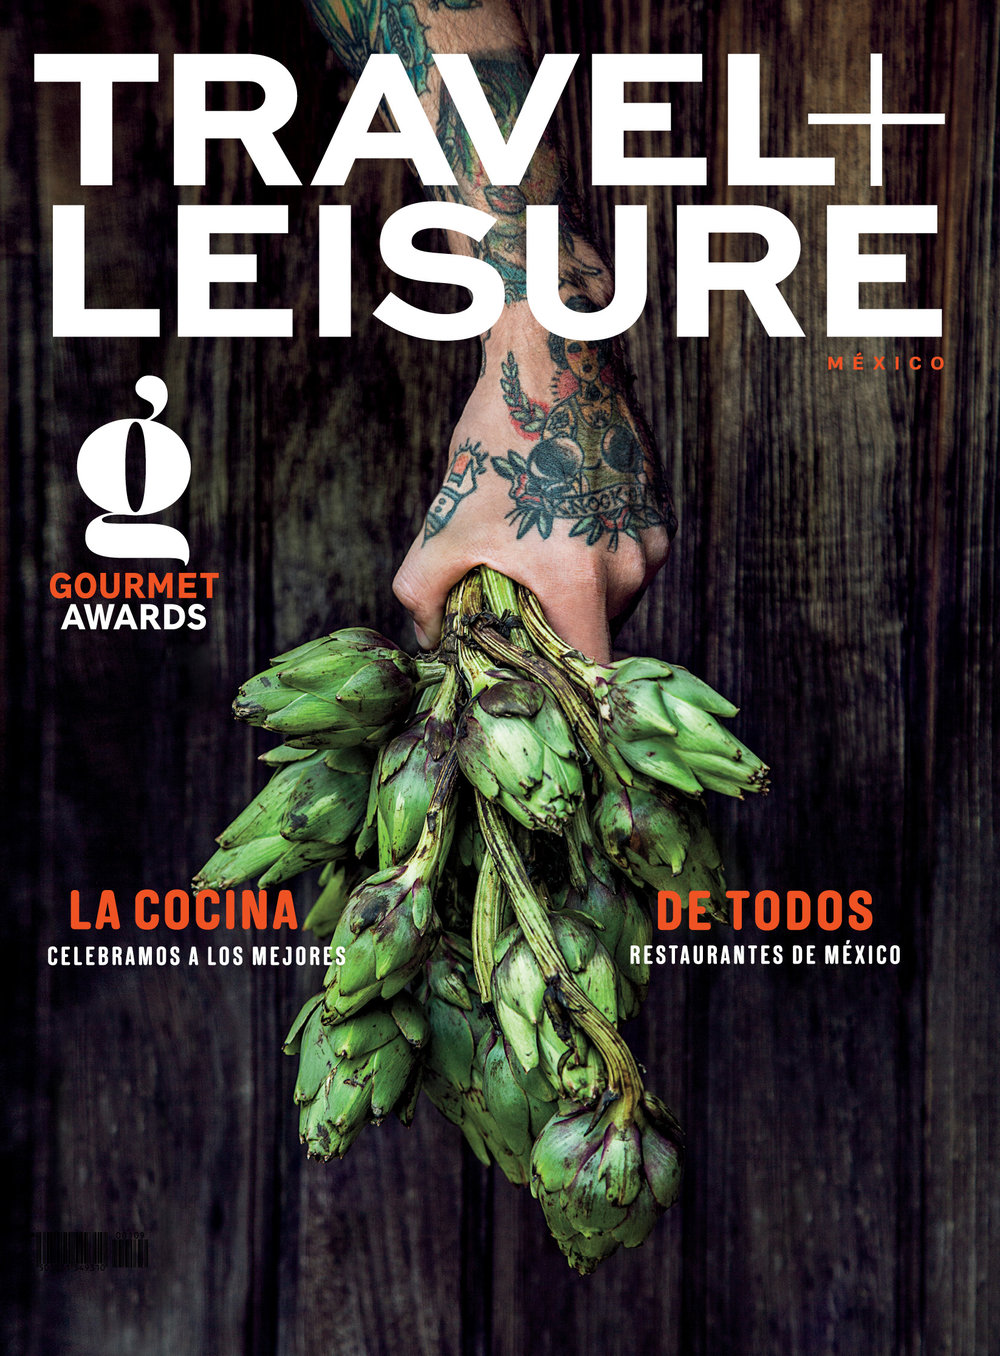 Travel + Leisure Mexico Magazine_November 2017_Cover.JPG